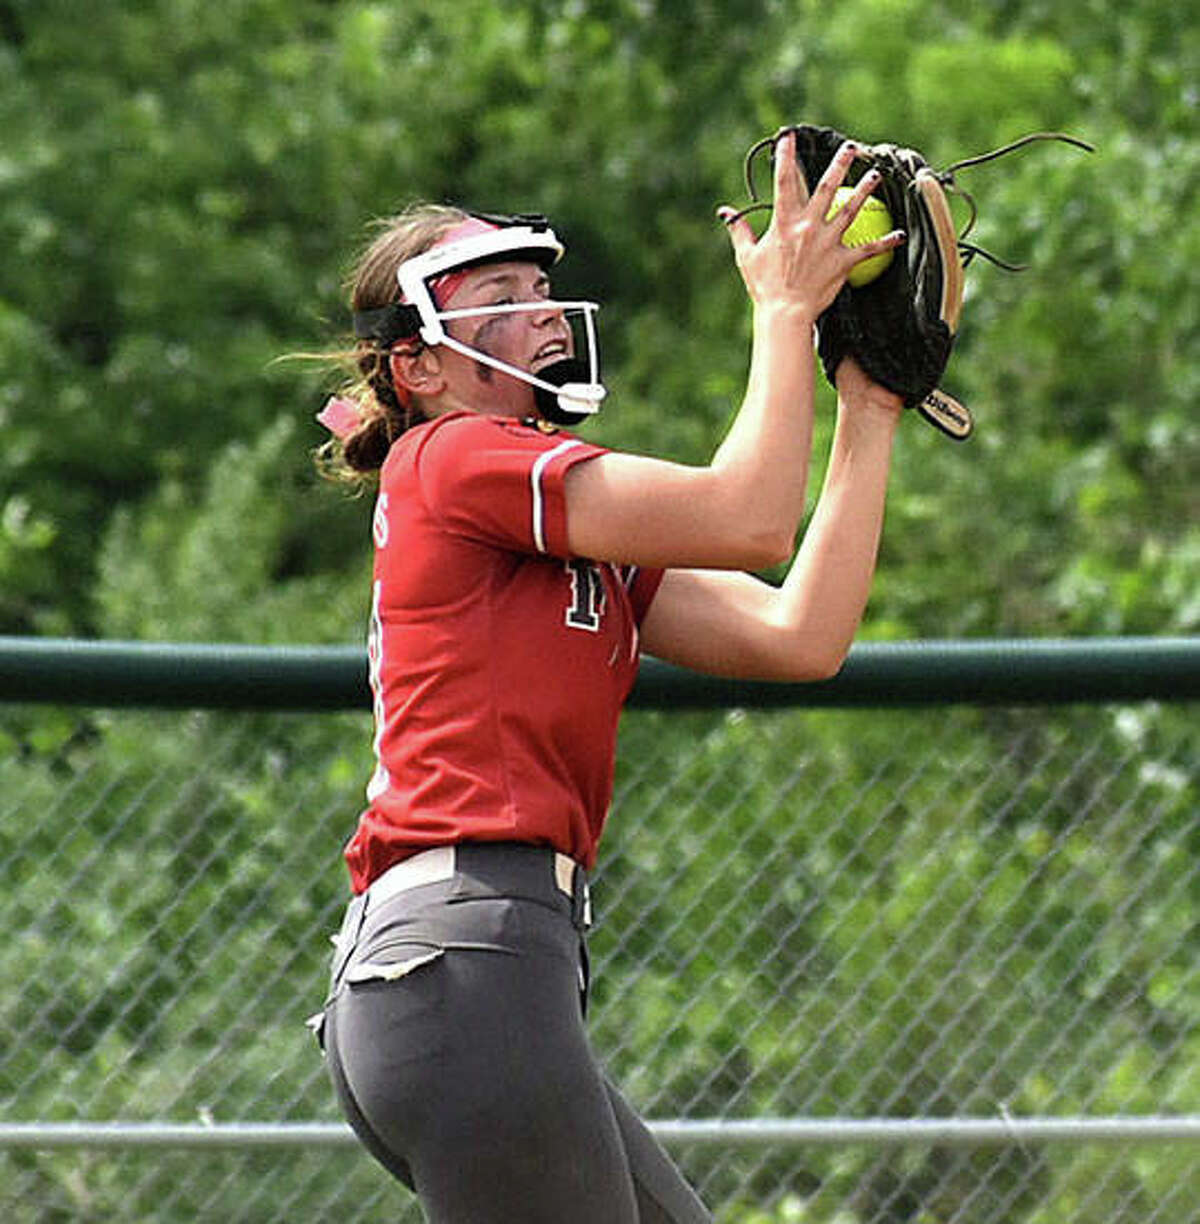 Alton second baseman Alyssa Sauls makes a running catch into short right field for the second out of the sixth inning Thursday morning against Edwardsville at Alton High in Godfrey.